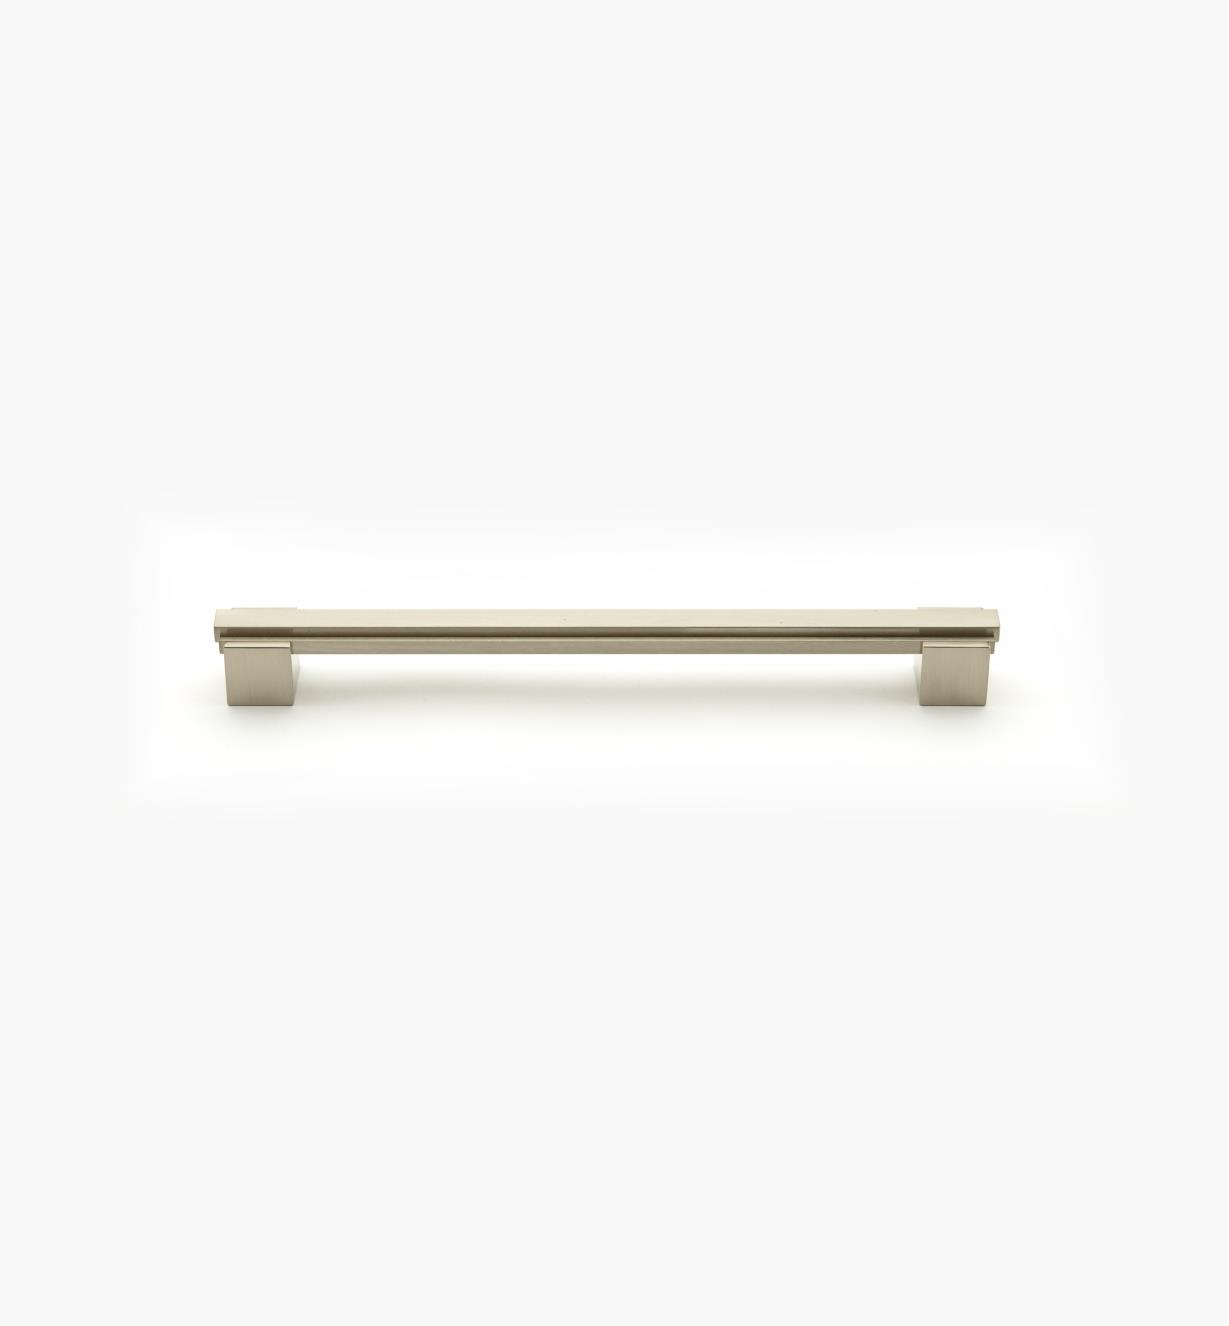 02W1363 - Chicago 256mm Satin Nickel Handle